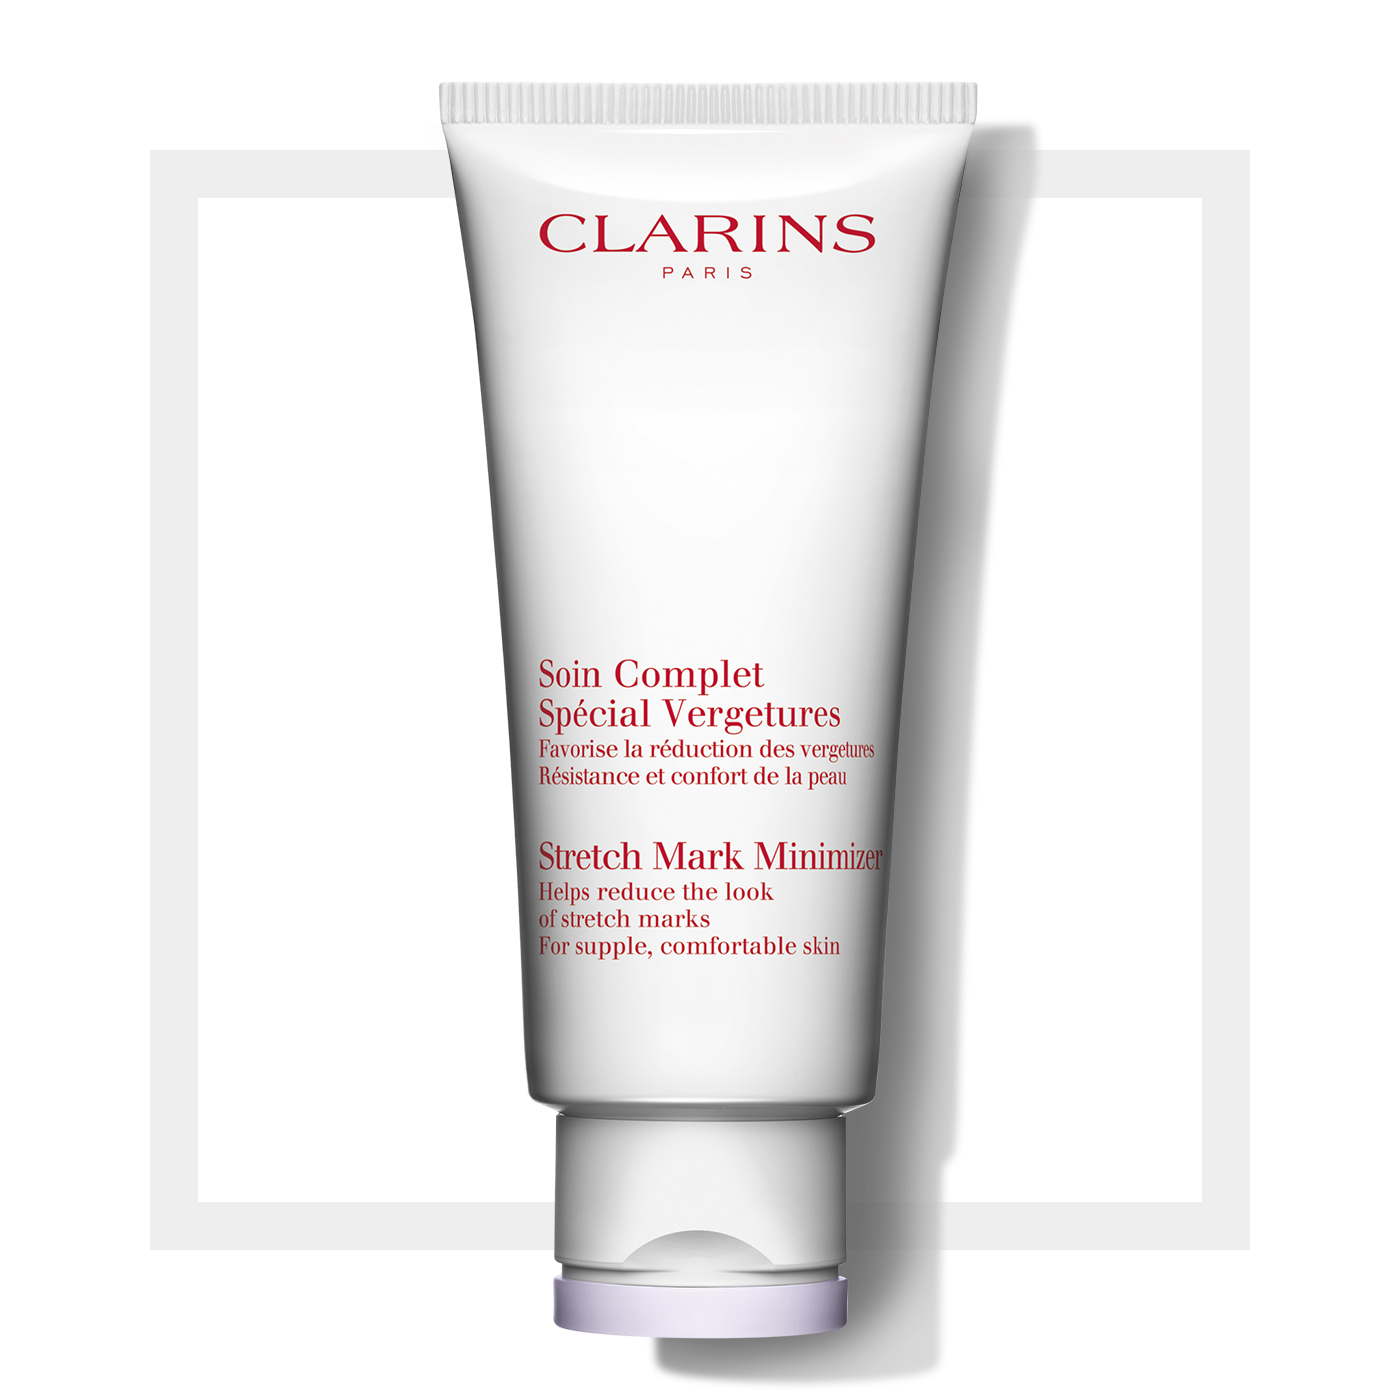 Stretch Mark Minimizer, Mother to be - Clarins